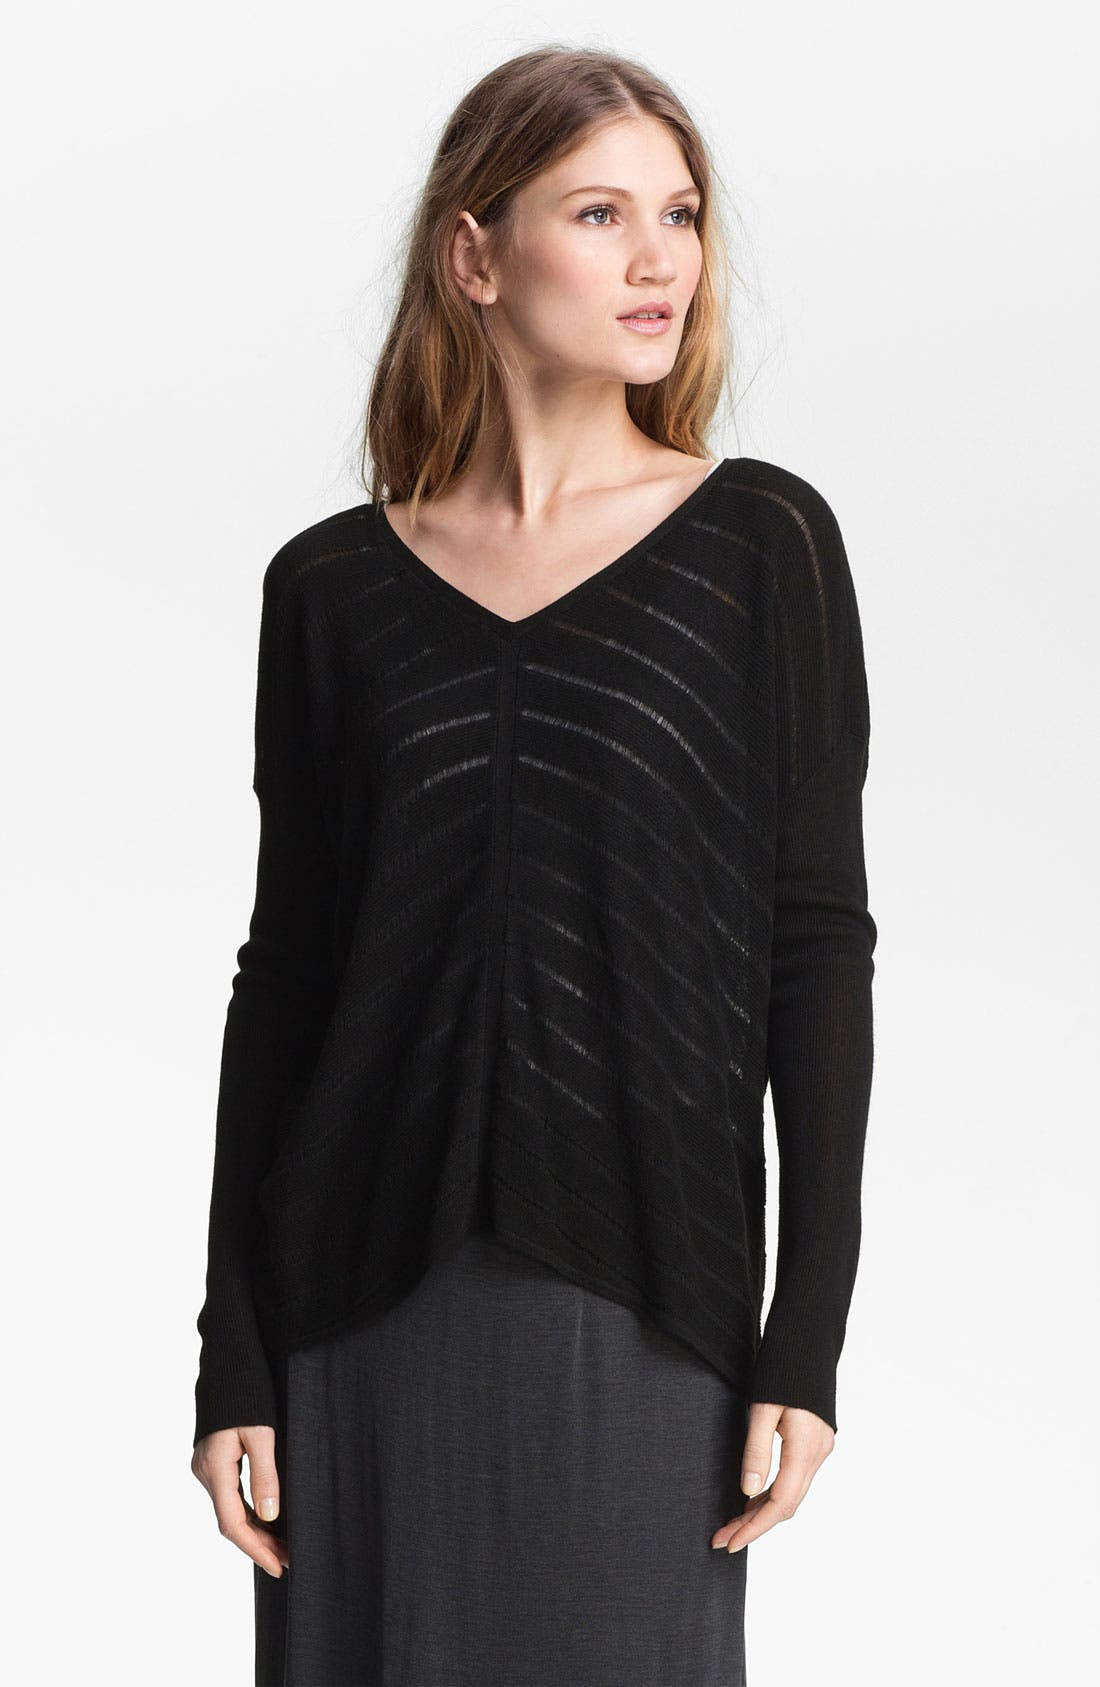 Alternate Image 1 Selected - Eileen Fisher Stripe Knit V-Neck Top (Online Exclusive)